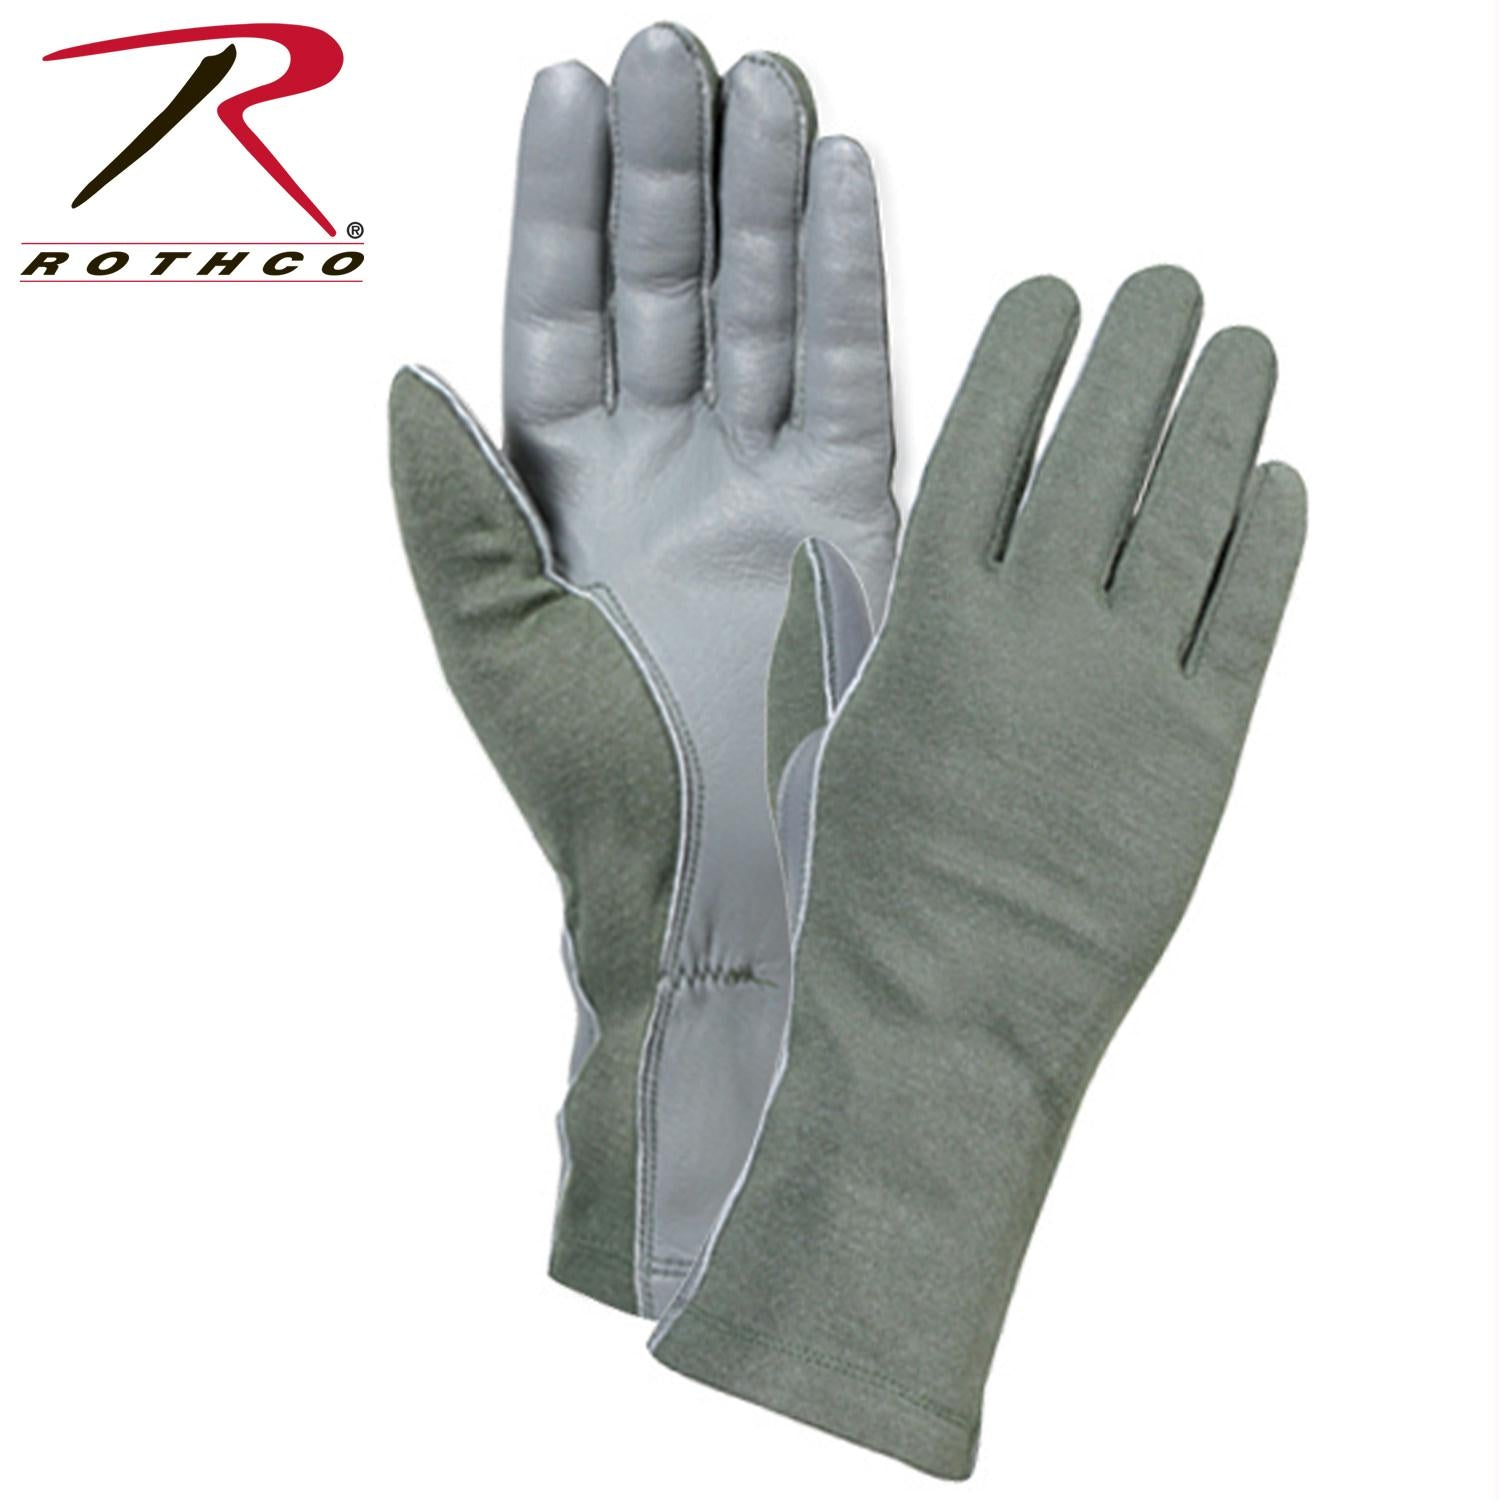 Rothco G.I. Type Flame & Heat Resistant Flight Gloves - Olive Drab / 8